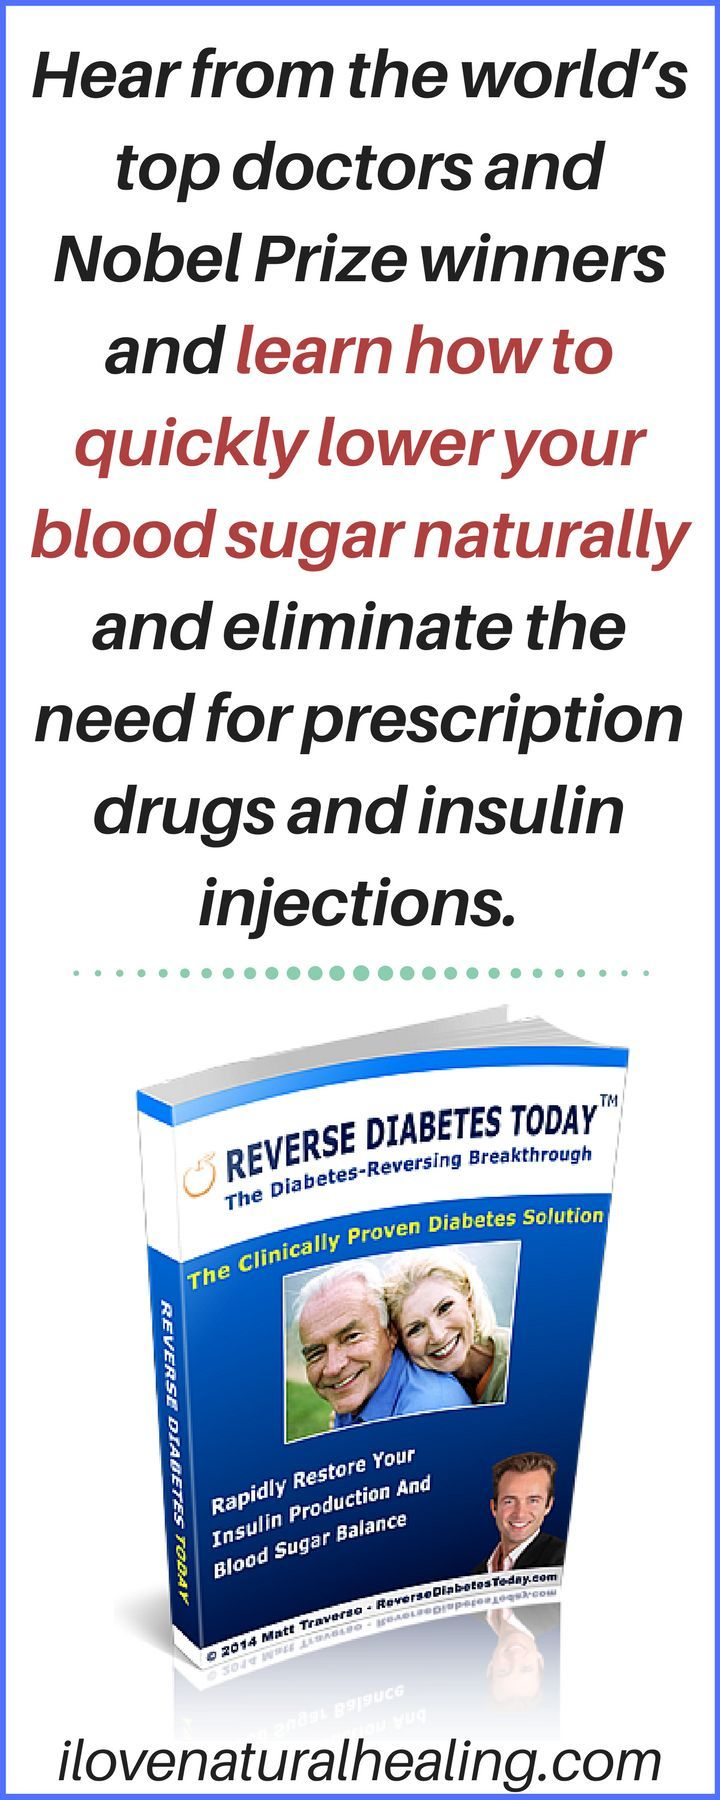 Reverse Diabetes Today - Here's important news for anyone with diabetes. A rem...